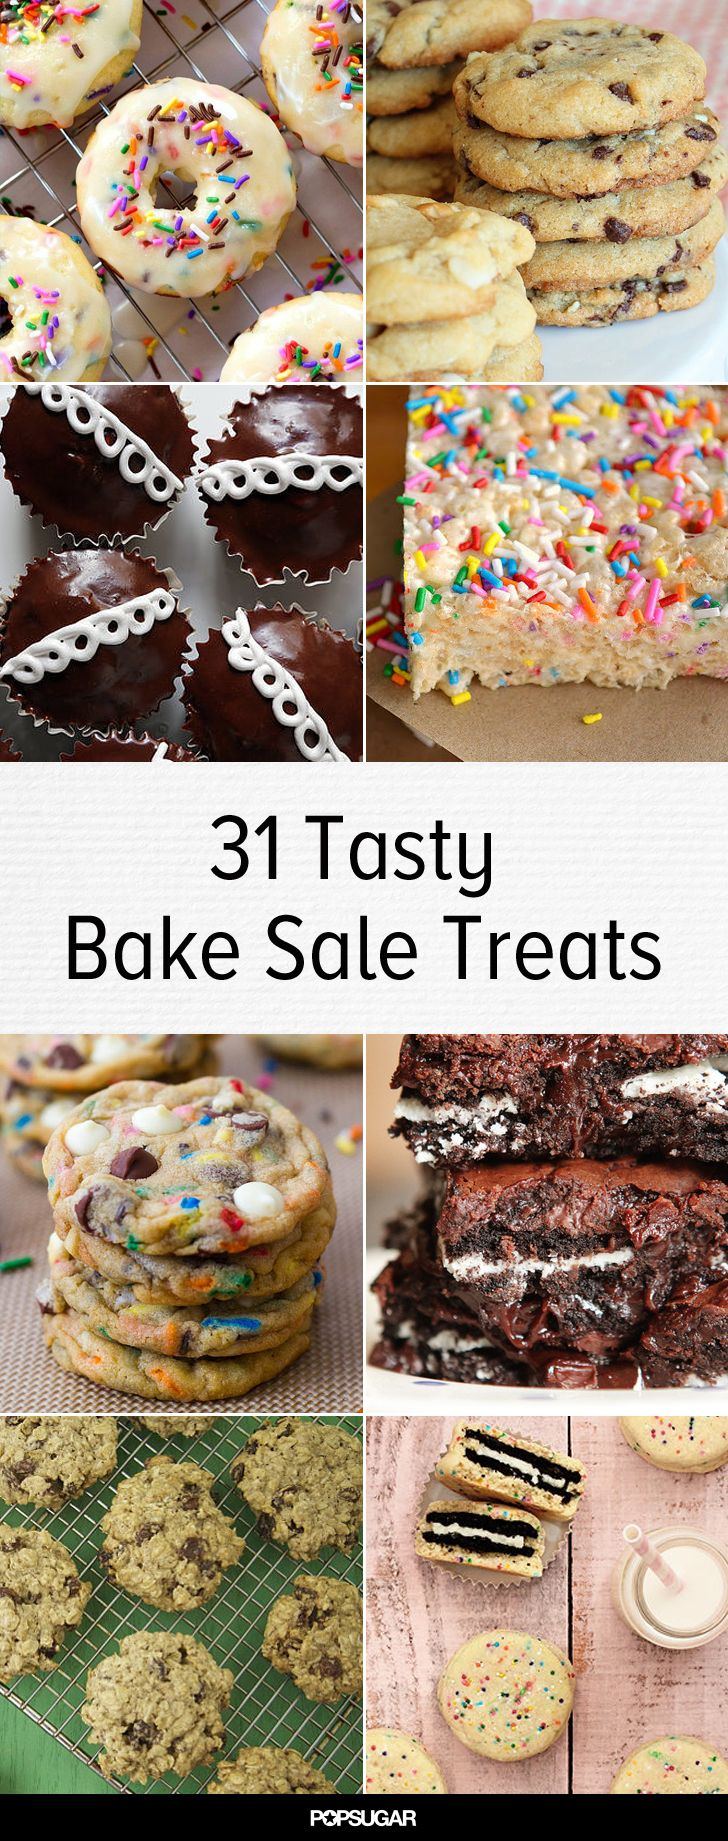 17 best images about bake bake ideas 17 best images about bake bake ideas fundraising and hostess cupcakes